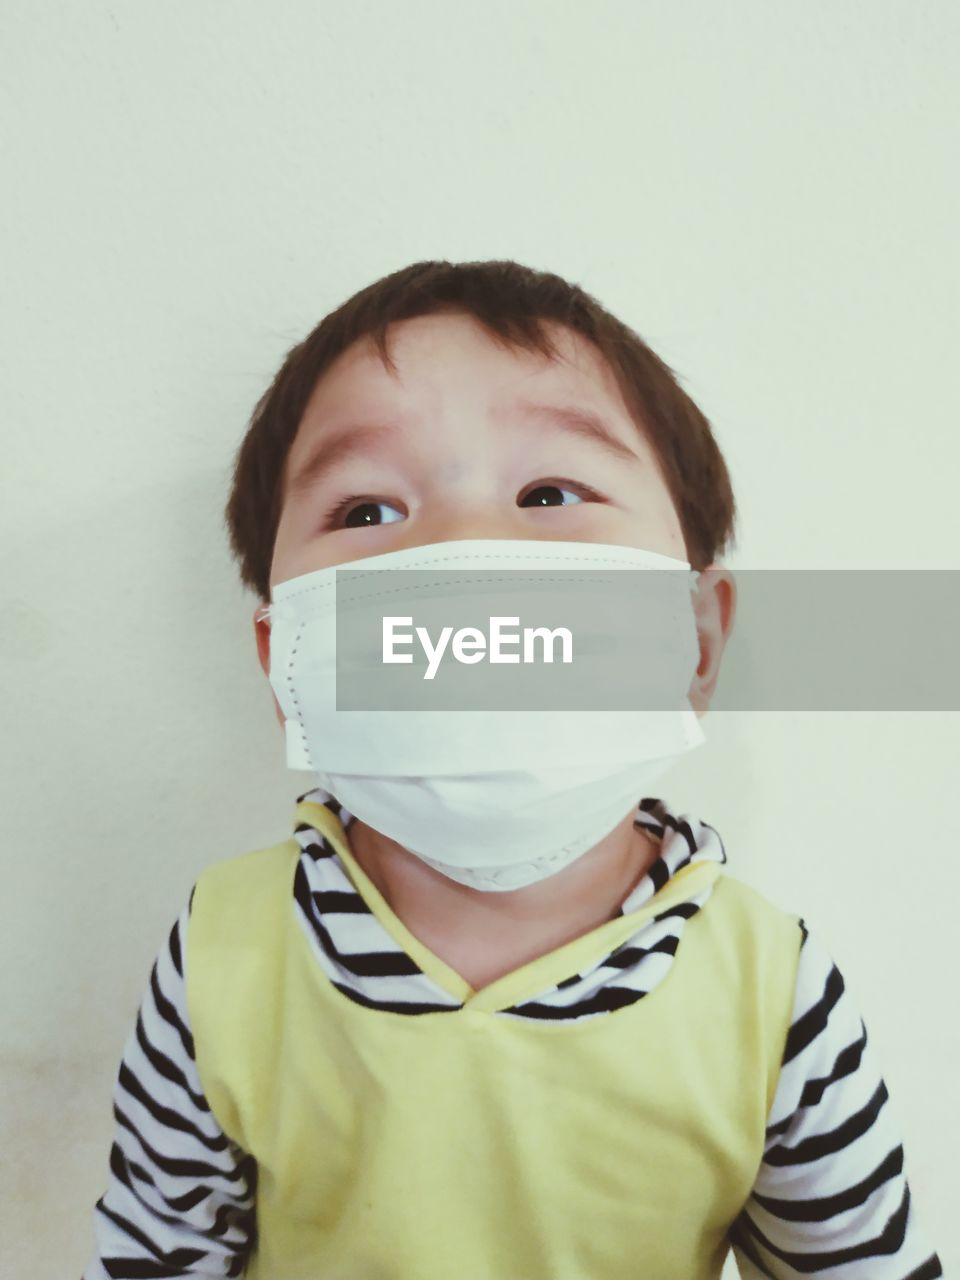 portrait, looking at camera, front view, indoors, child, one person, childhood, headshot, studio shot, casual clothing, men, boys, males, wall - building feature, surgical mask, security, white background, real people, obscured face